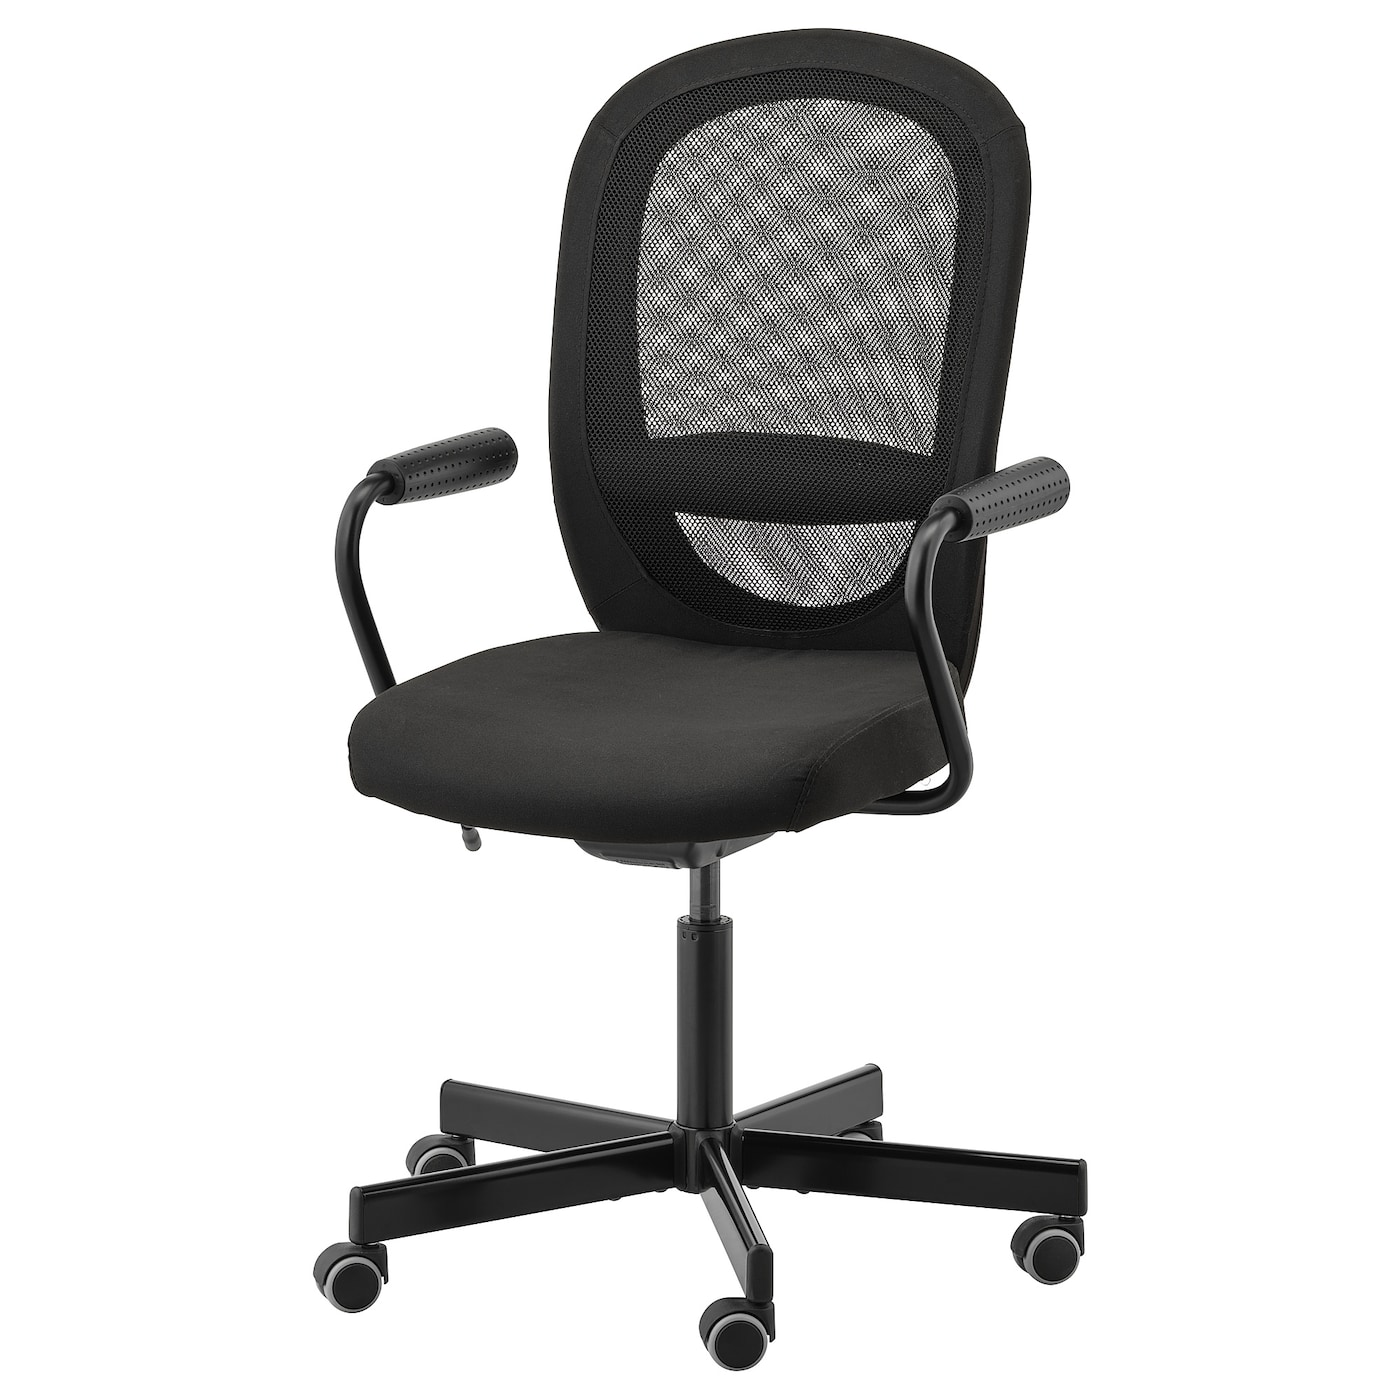 FLINTAN / NOMINELL Office chair with armrests - black - IKEA